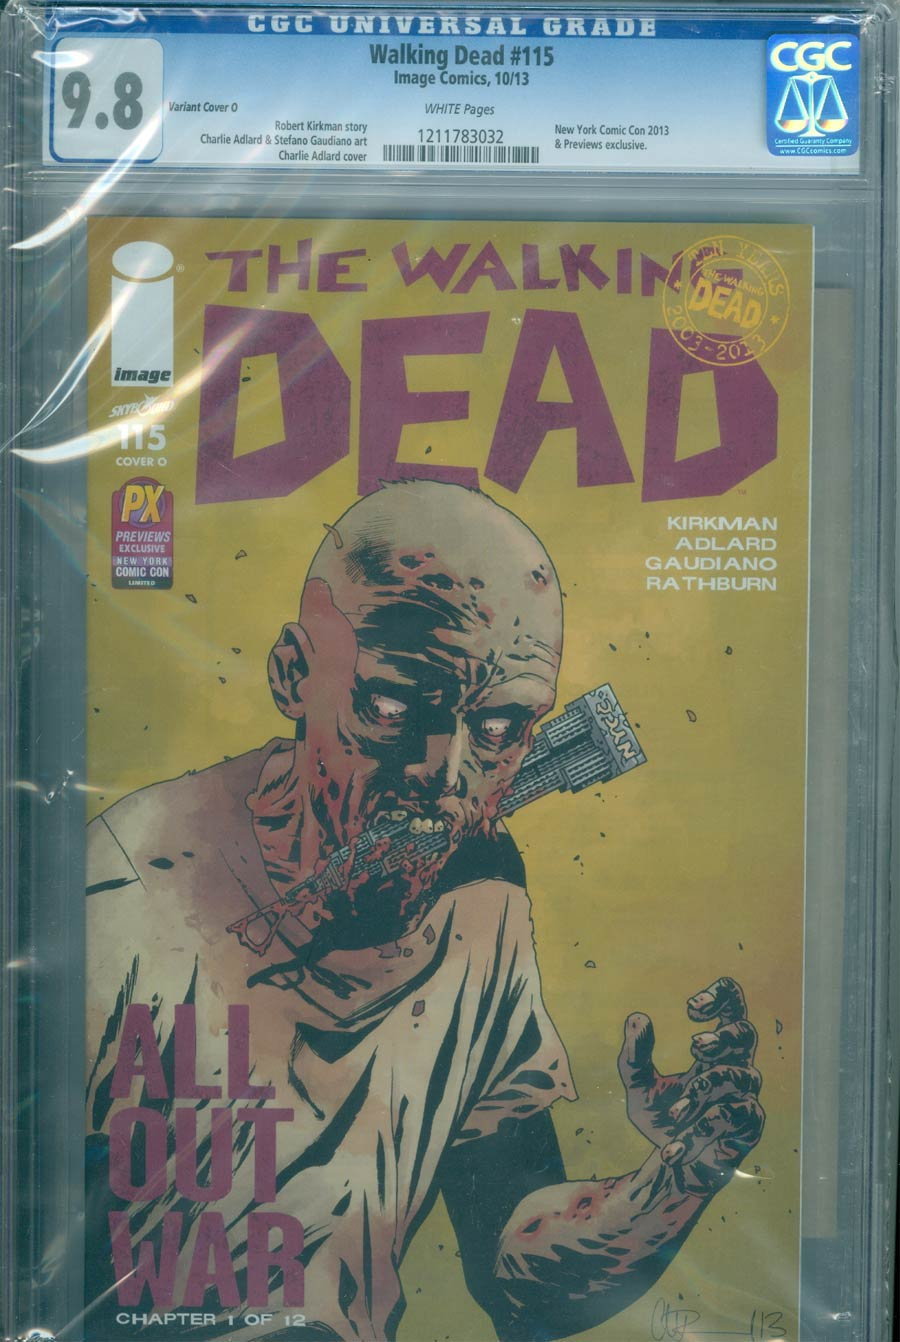 Walking Dead #115 Cover R DF NYCC Previews Exclusive Charlie Adlard Variant Cover CGC Graded